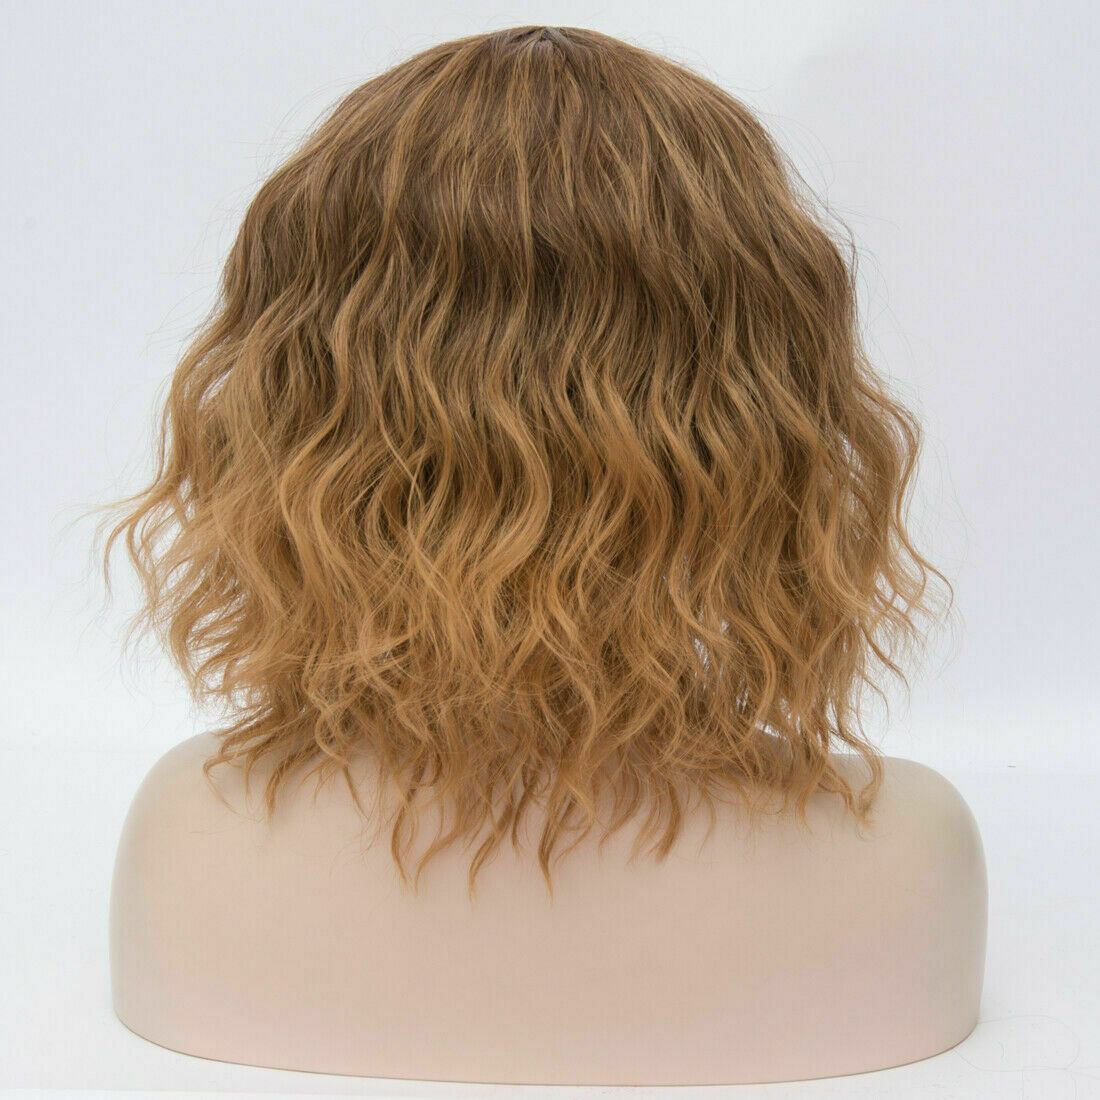 Lolita-Women-039-s-Short-Curly-Anime-Synthetic-Hair-Heat-Resistant-Cosplay-Party-Wig miniature 19